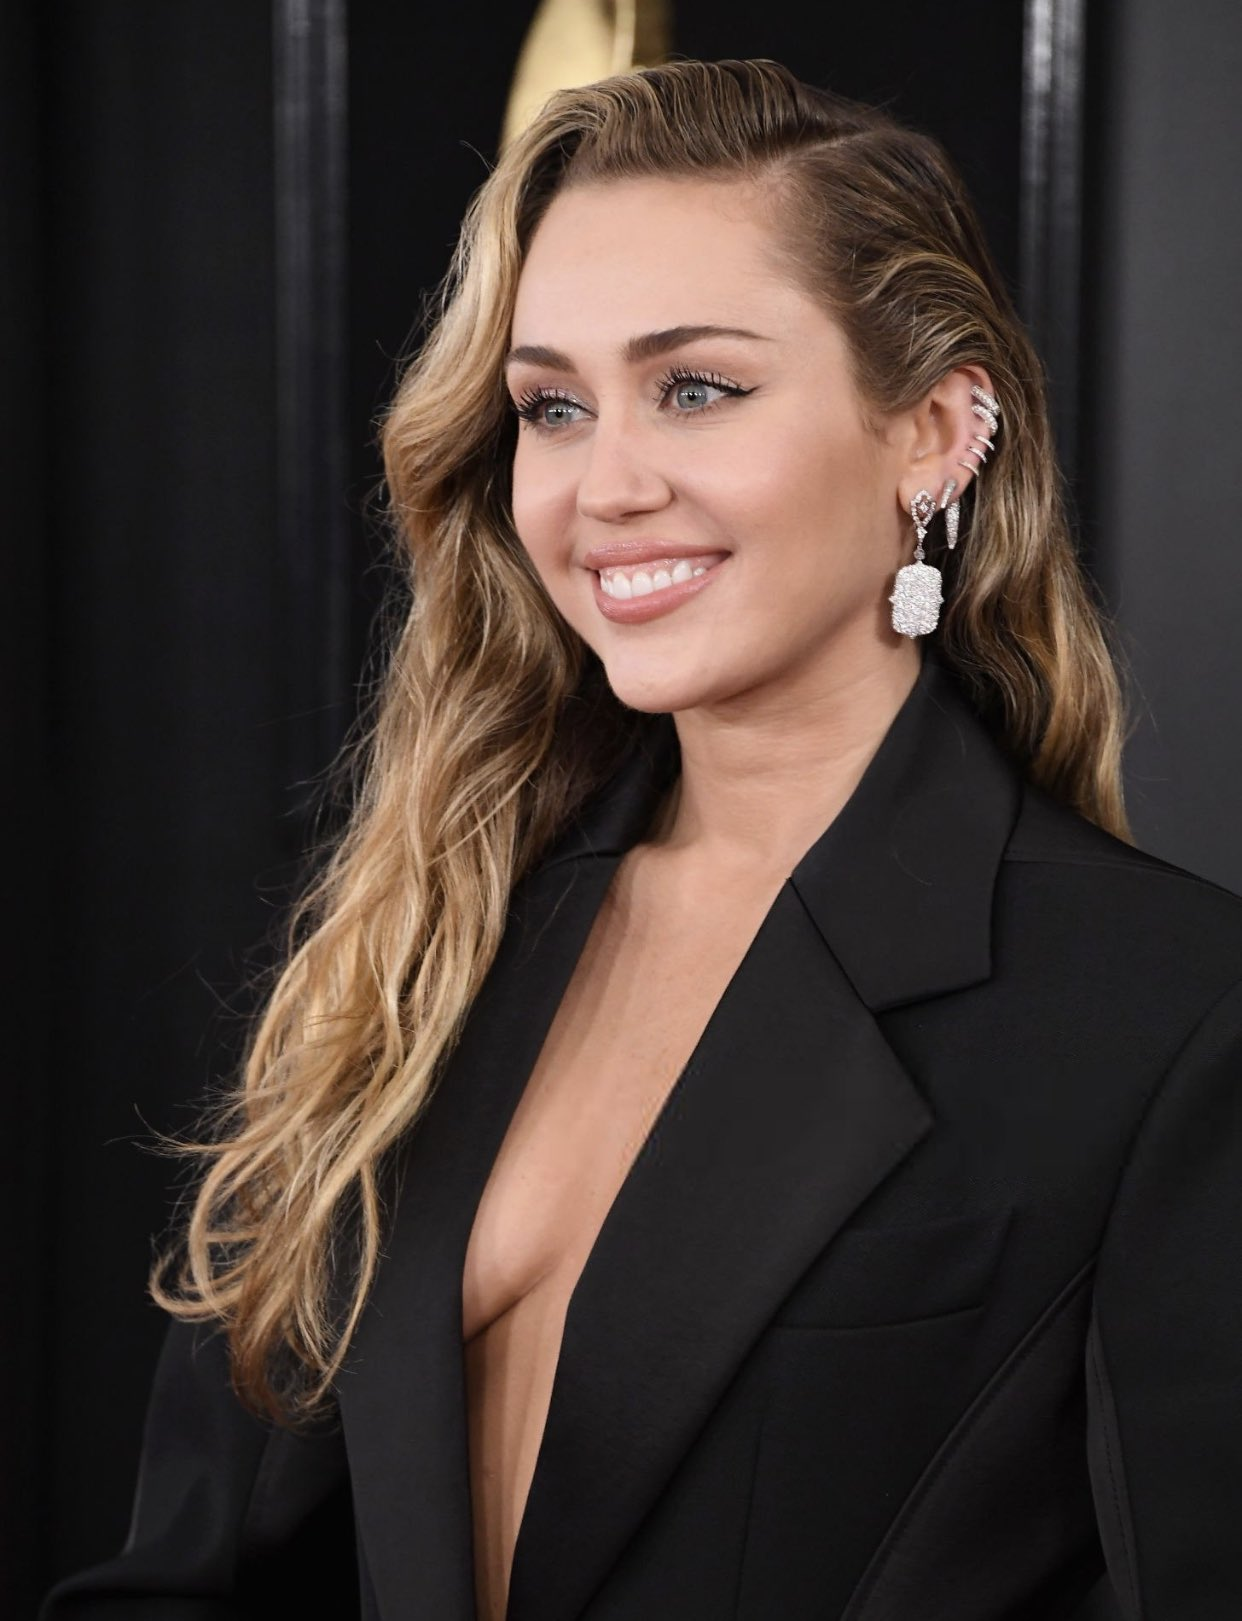 #Miley #GrammyAwards2019 🔥🔥 https://t.co/anEXxtHgrV